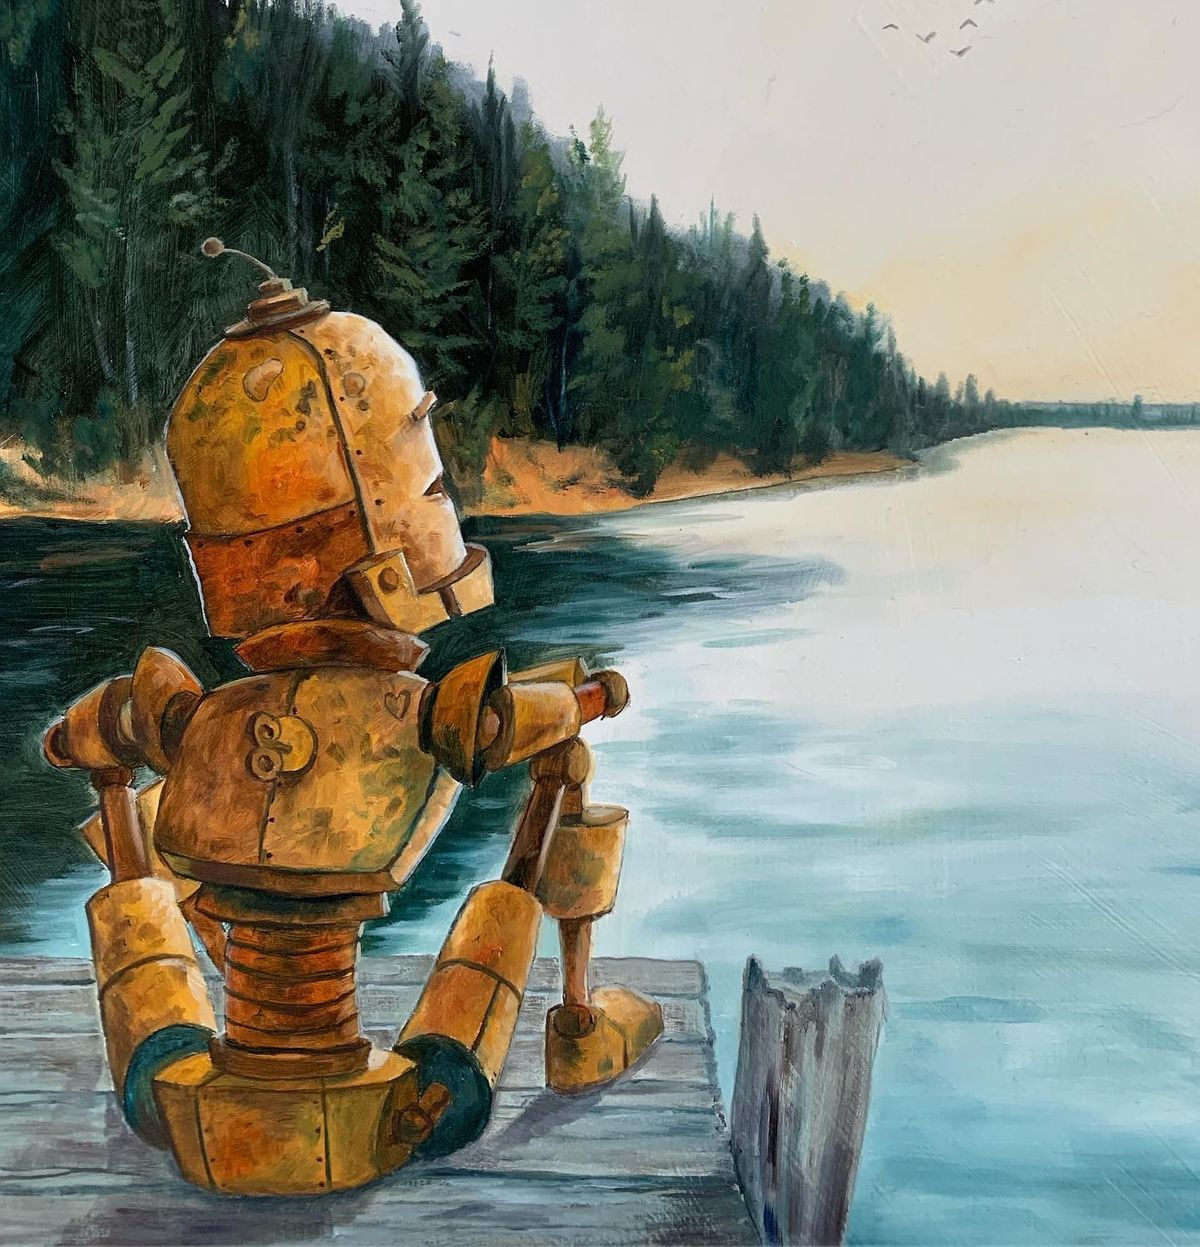 Robots_in_Rowboats_art_by_Lauren_briere_dock_o_the_bay_bot_austin_art_local_art.JPG